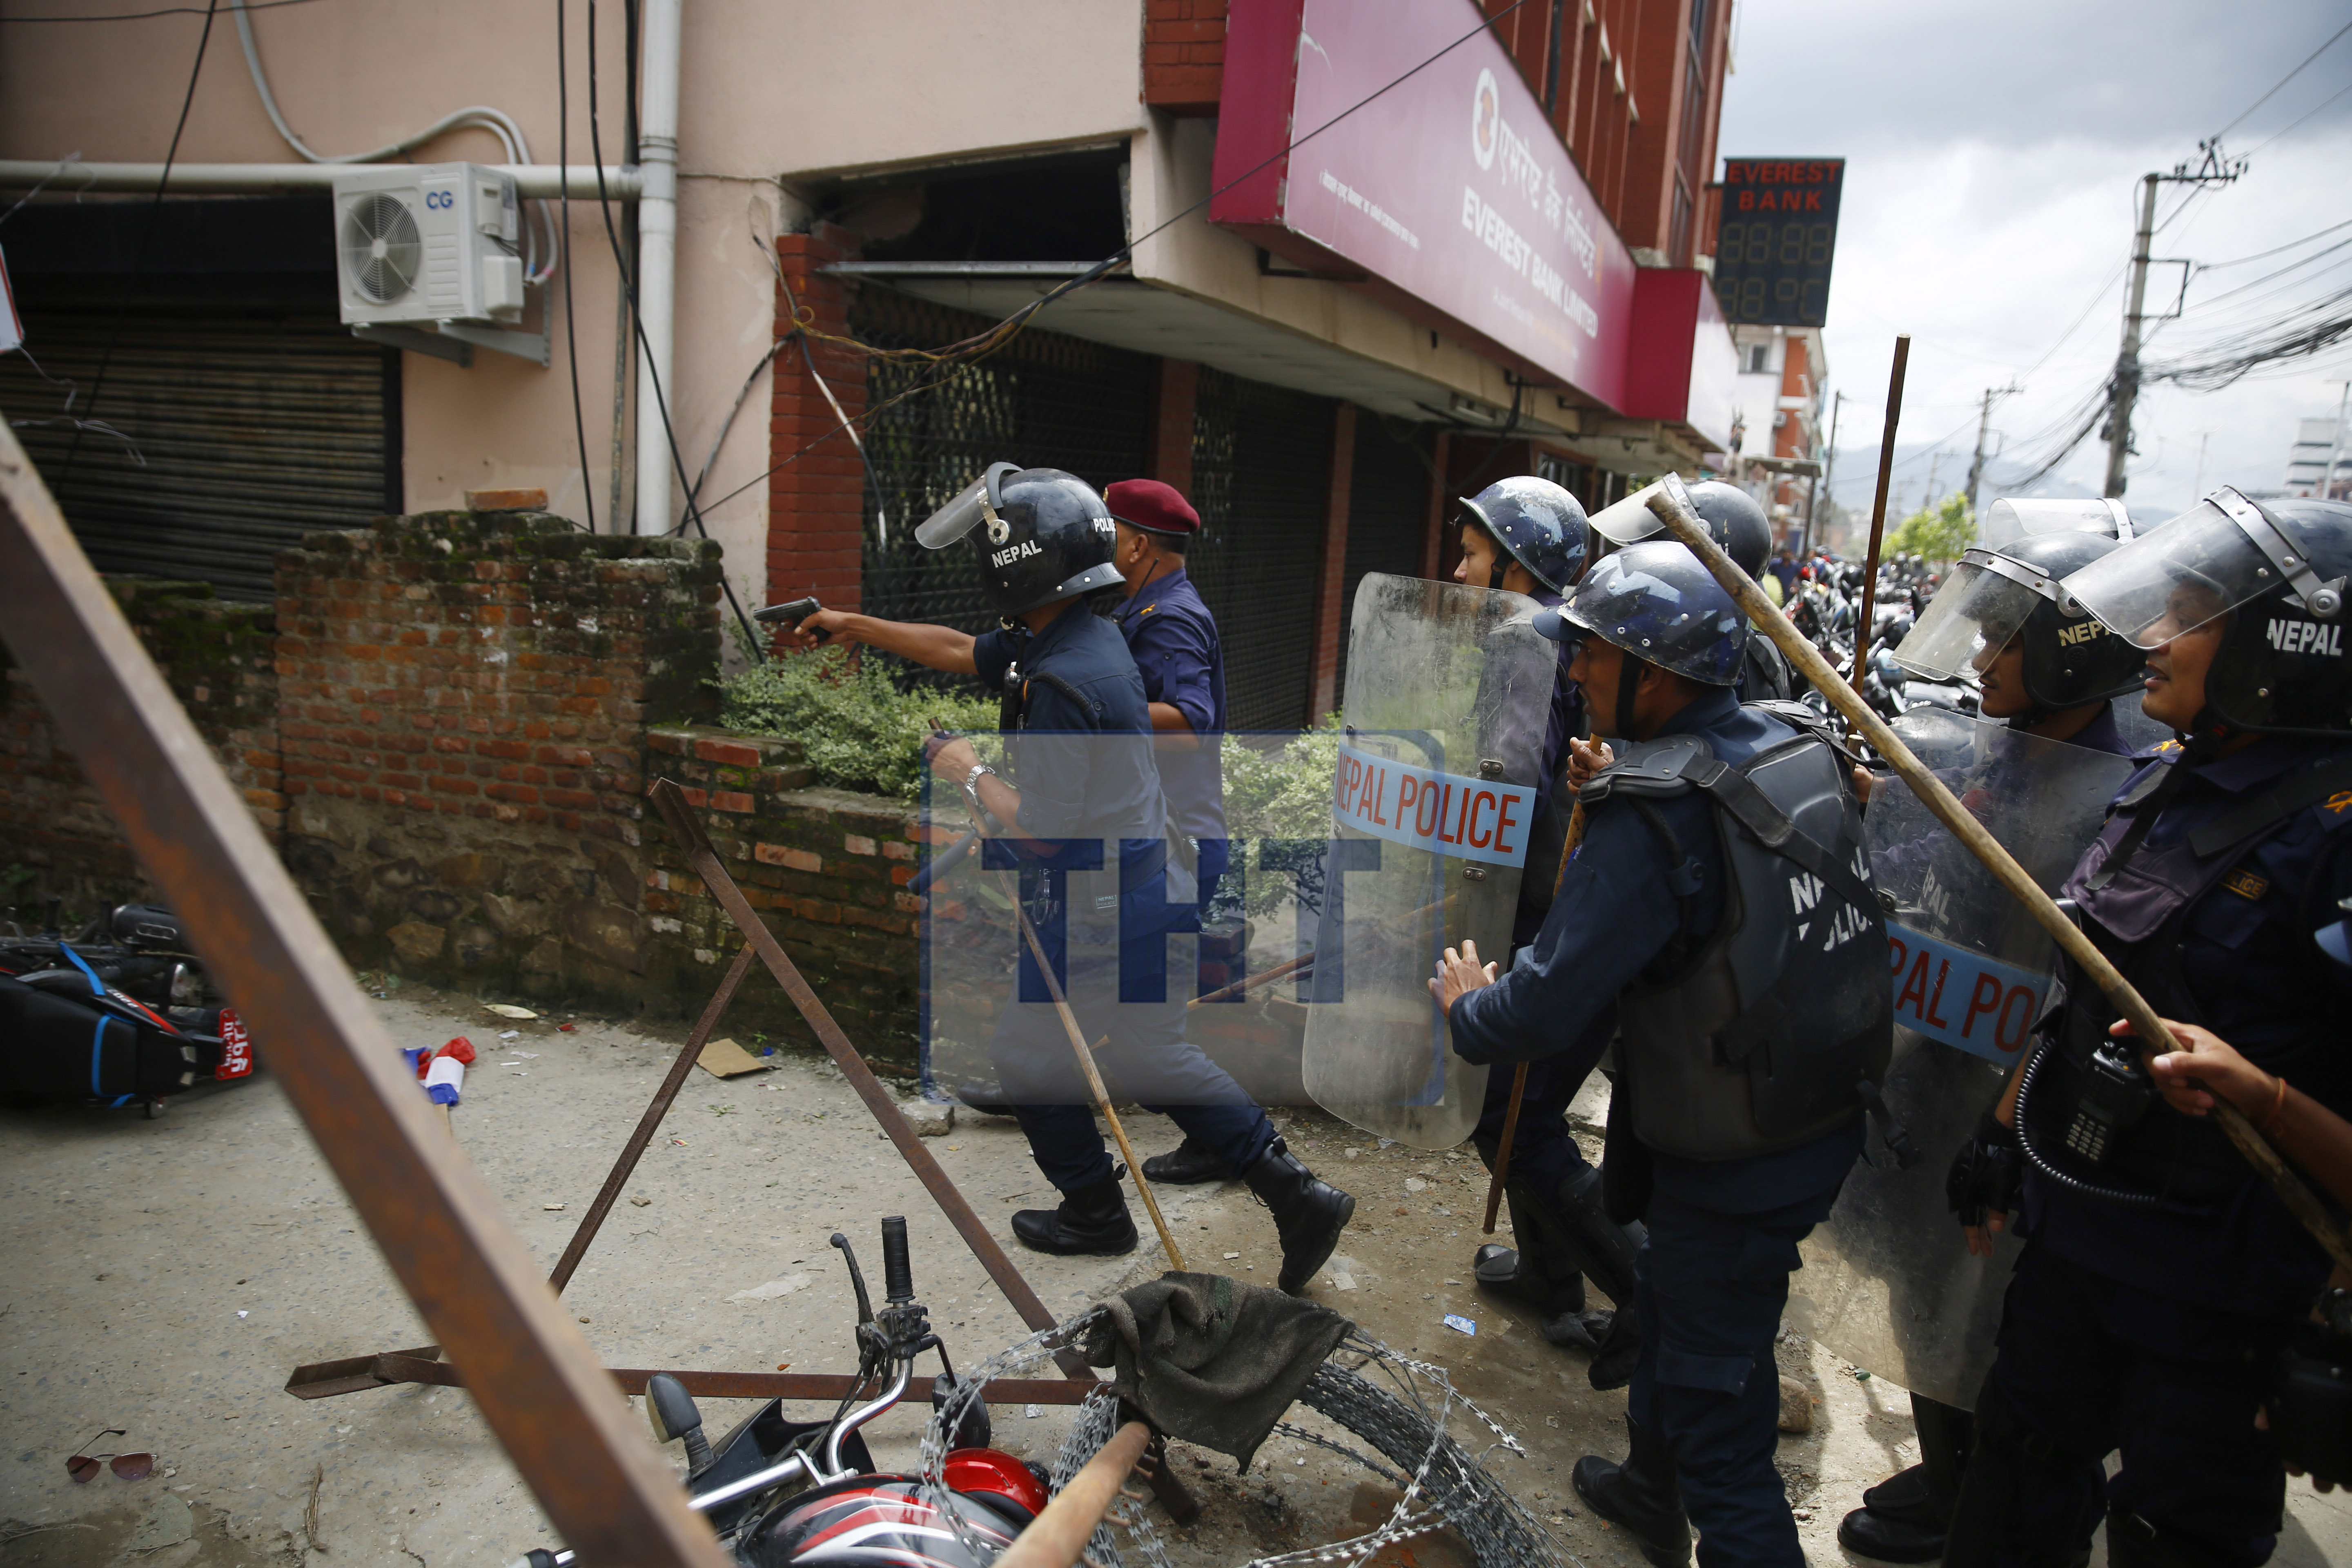 FILE: A policeman threatening demonstrators with a pistol in Baneshwor, Kathmandu, on Saturday. The protesters had gathered in support of Dr Govinda KC. Photo: Skanda Gautam/ THT